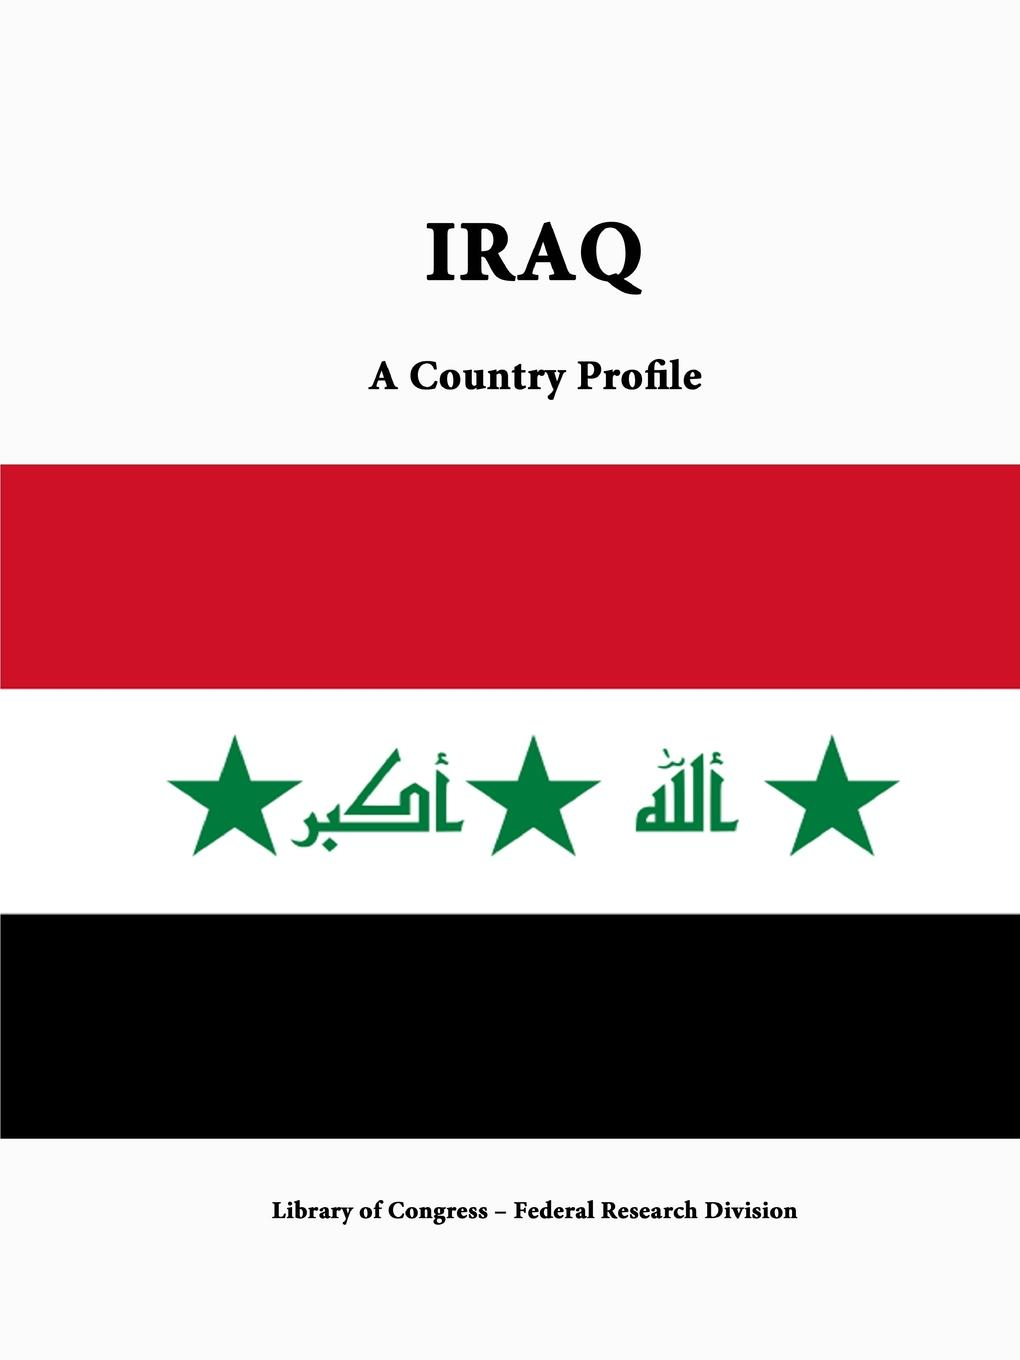 Library of Congress, Federal Research Division Iraq. A Country Profile set wonders in the new year s plaid